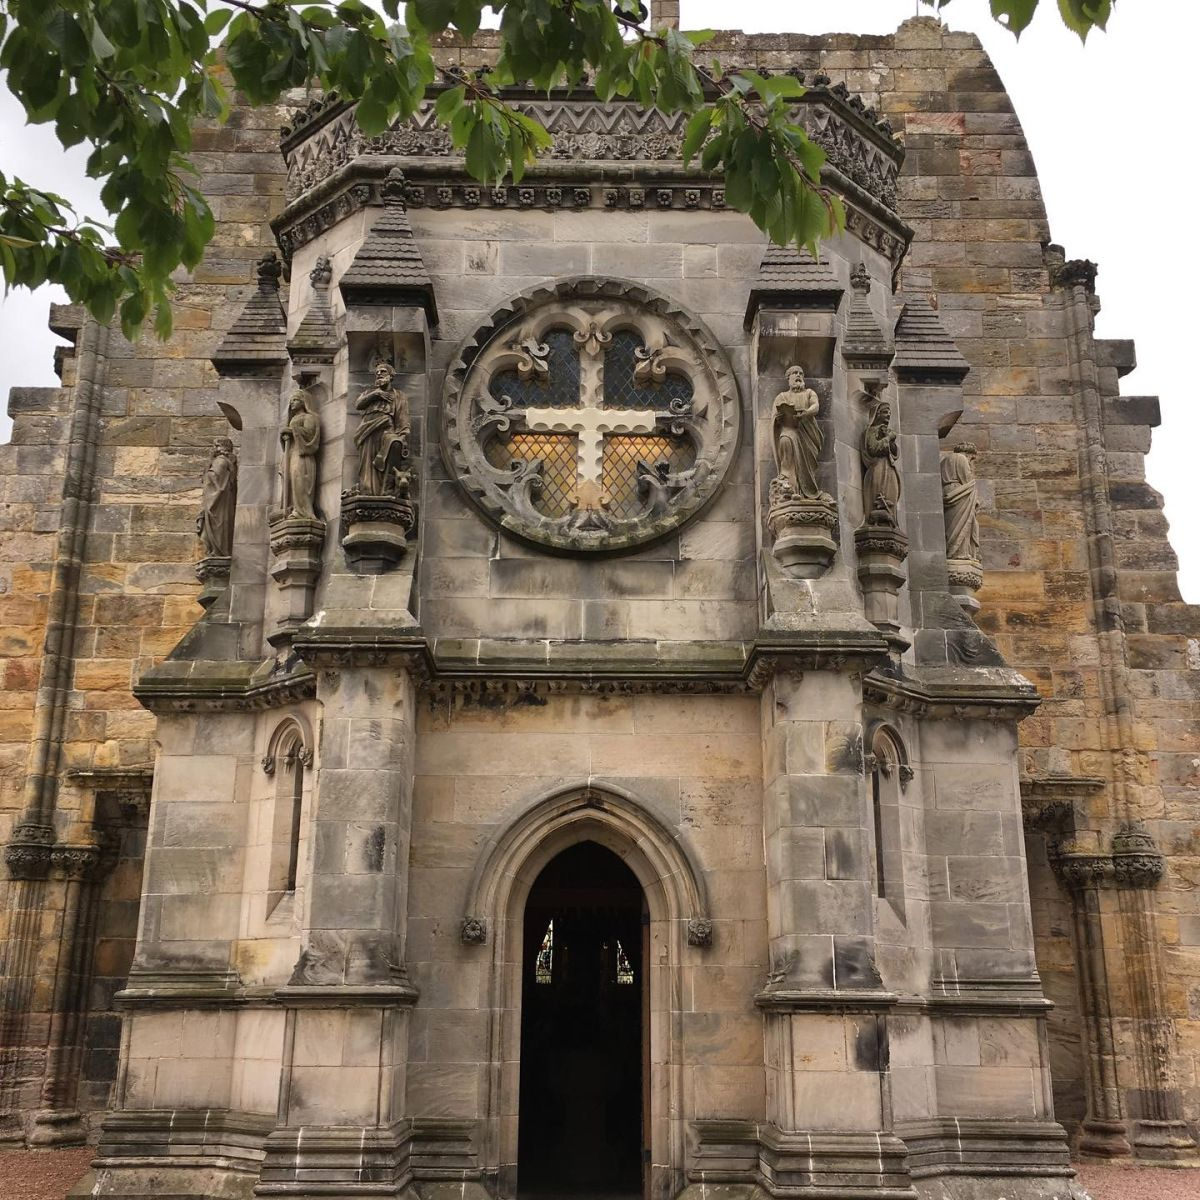 "Tonya U. Brown @MrsBrownee2U: ""The Mystery and Symbolism of Rosslyn Chapel. Pictures do not do this beautiful little chapel justice. Hope you enjoy! #WritingCommunity #15thcentury #knights #KnightsTemplar #Scotland #VisitScotland "" / via @penny_hampson"